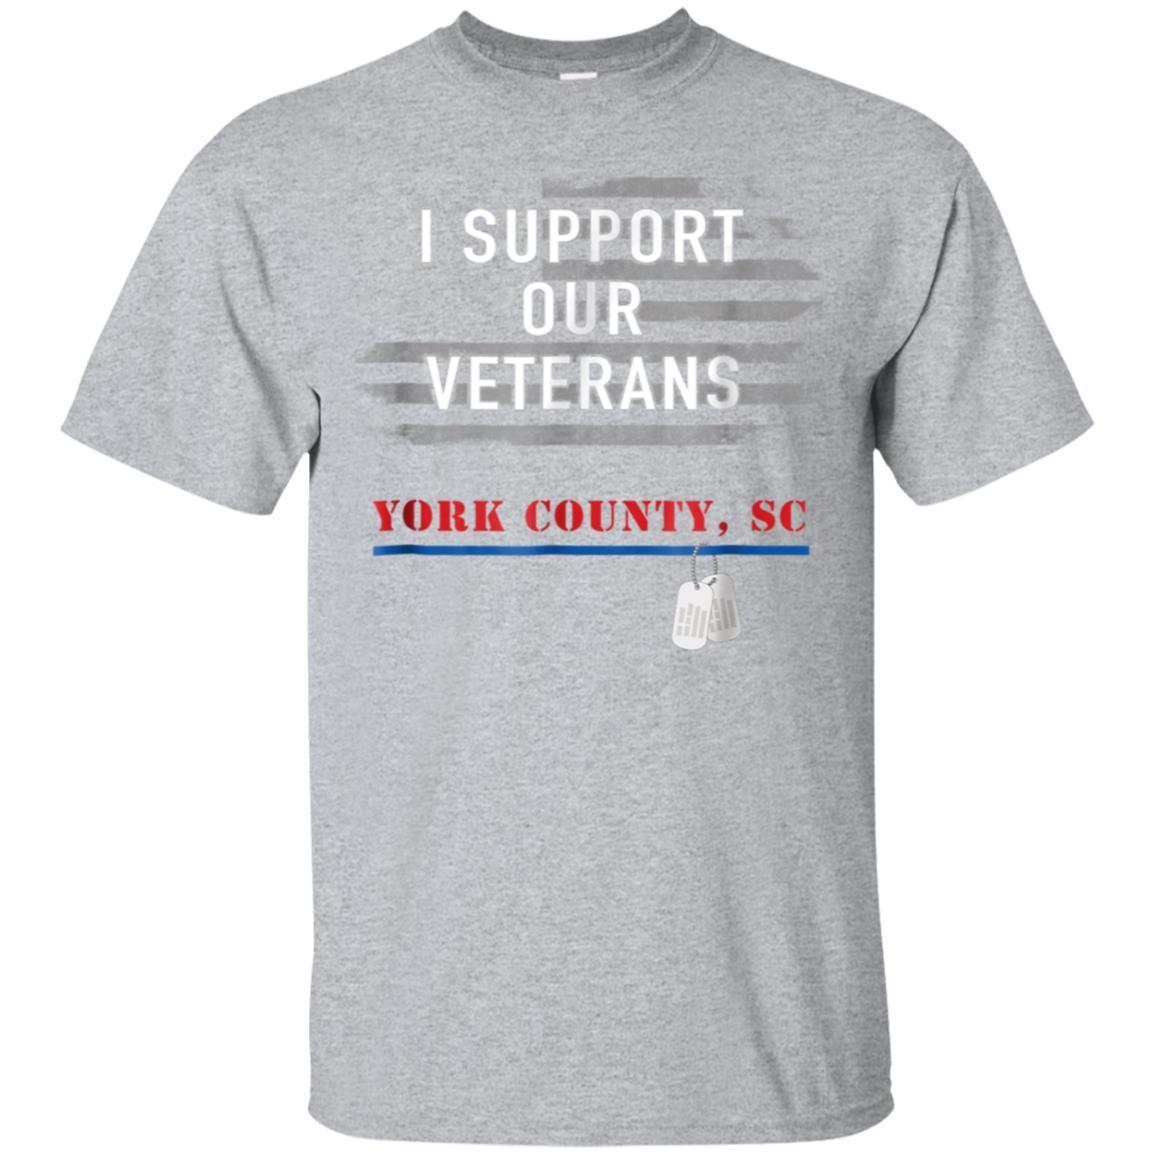 I Support Our Veterans York County SC T-Shirt 99promocode